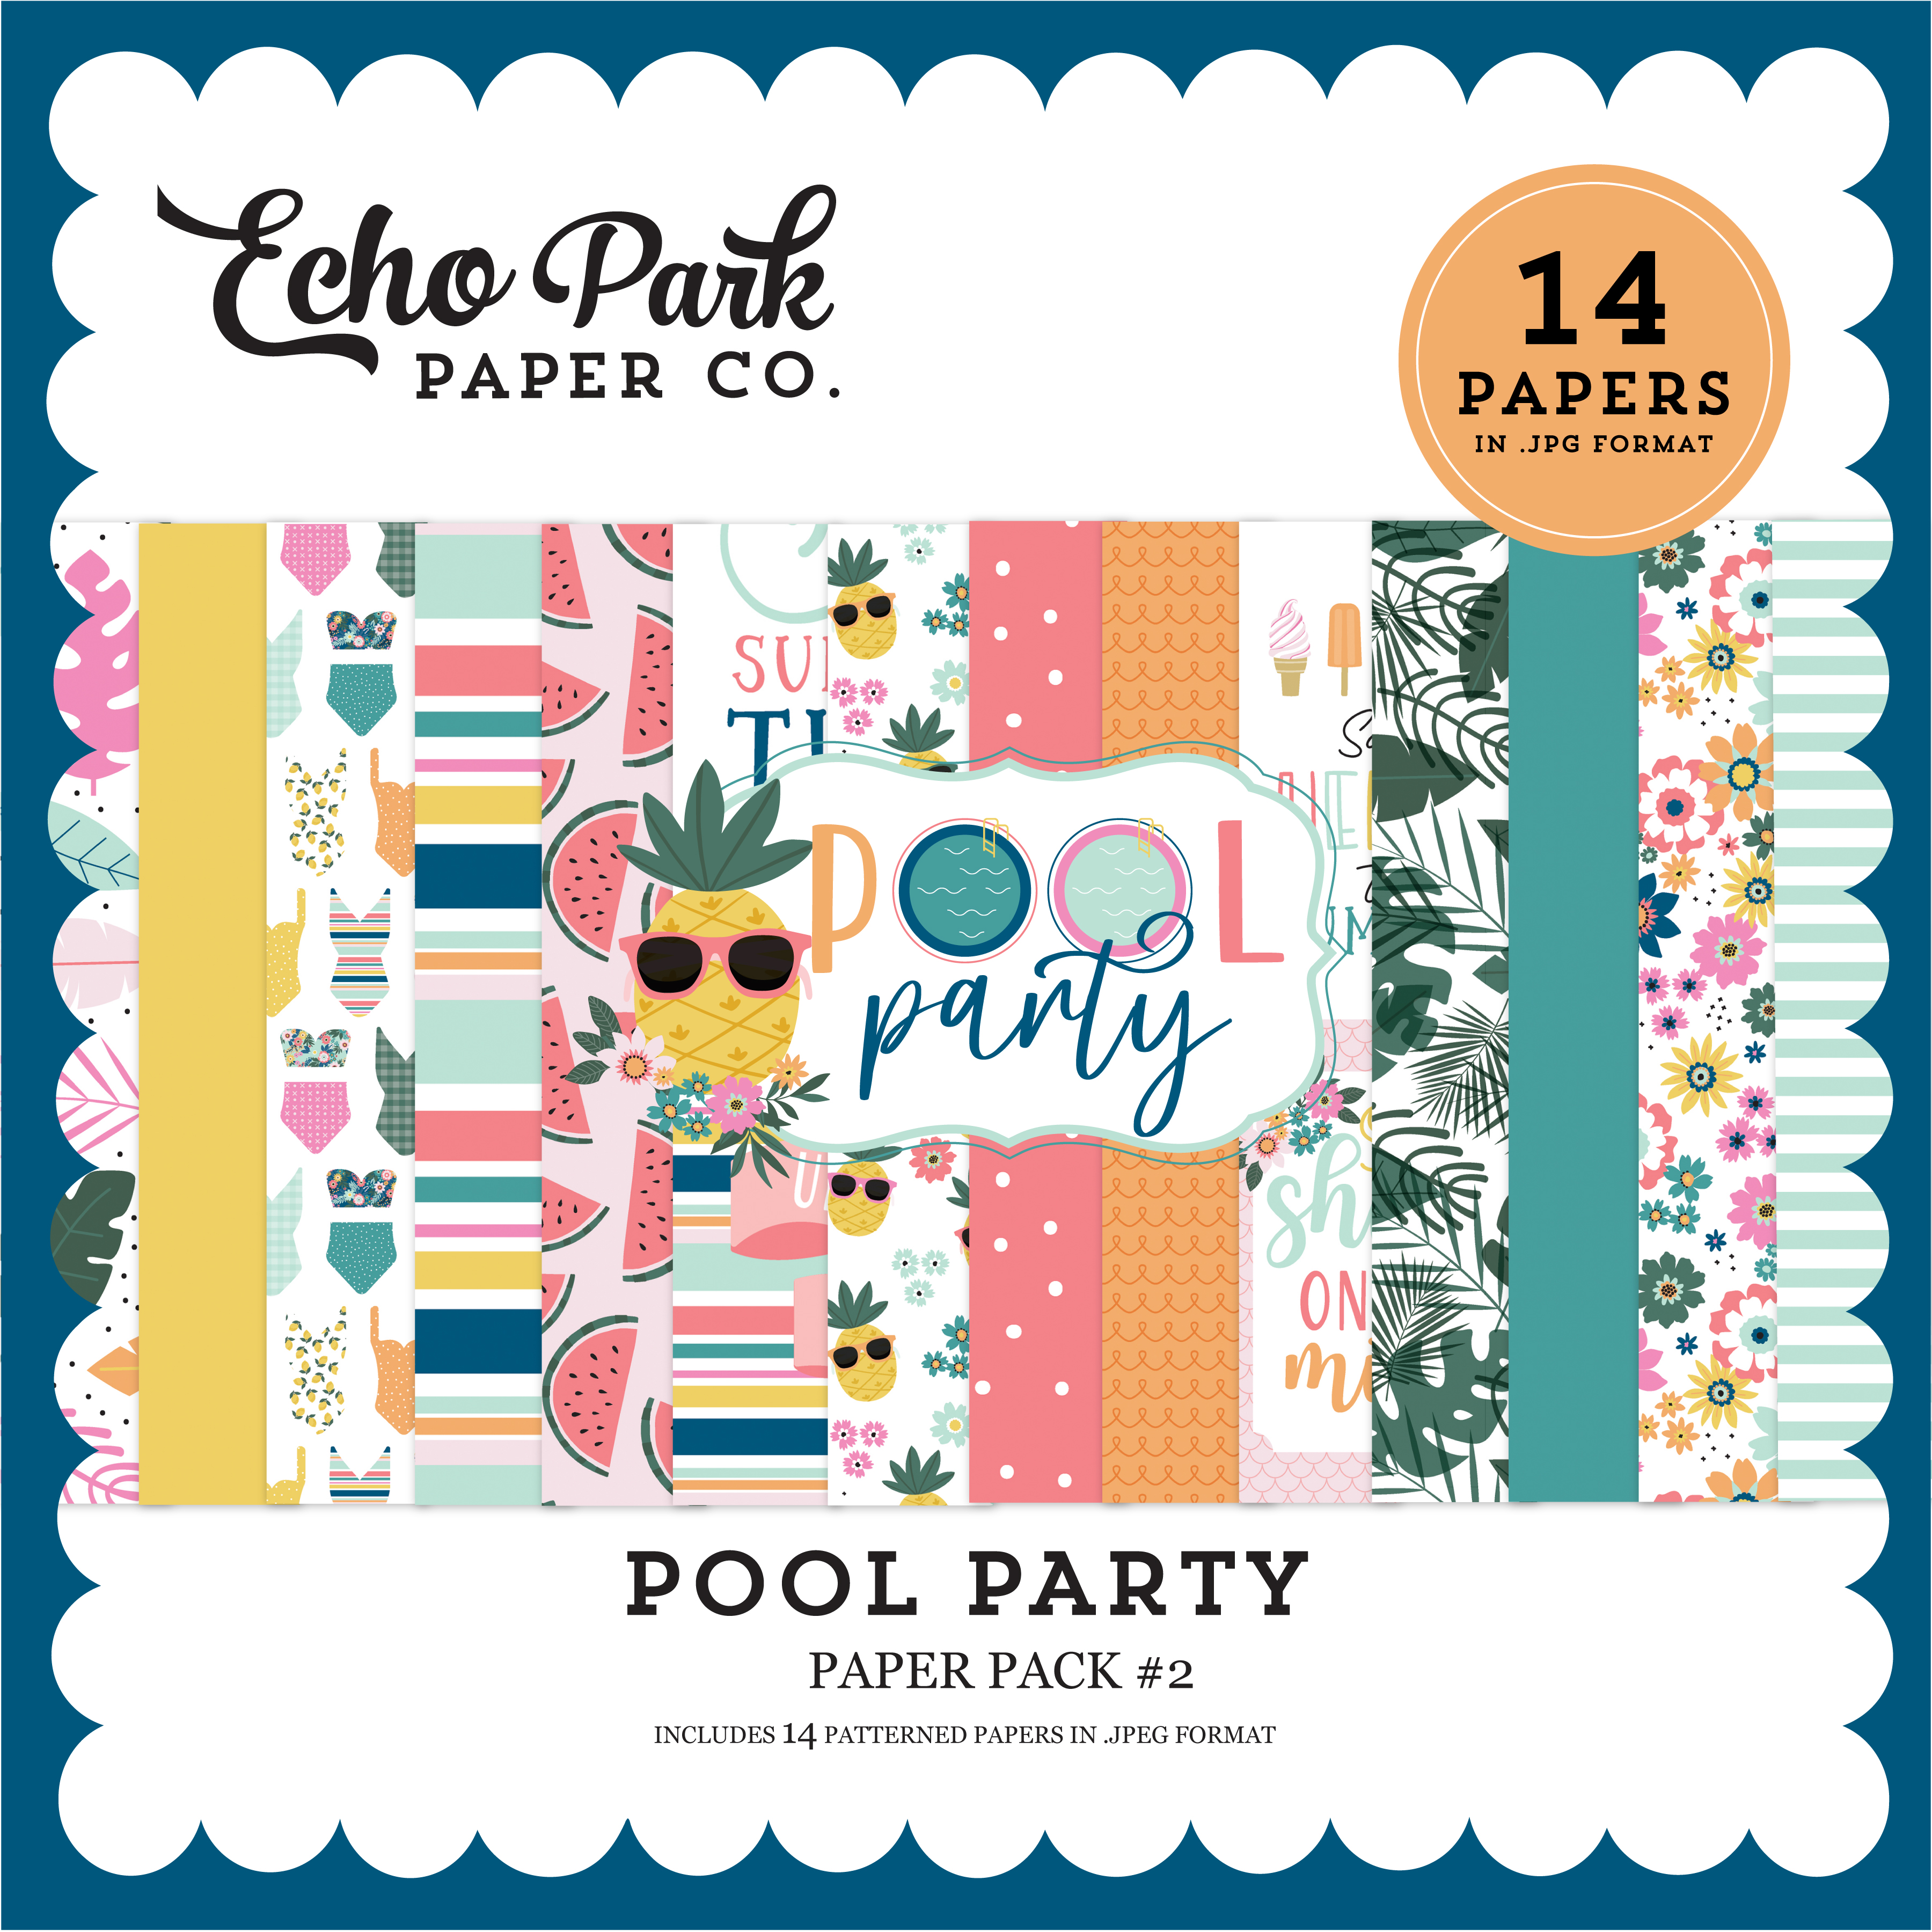 Pool Party Paper Pack #2